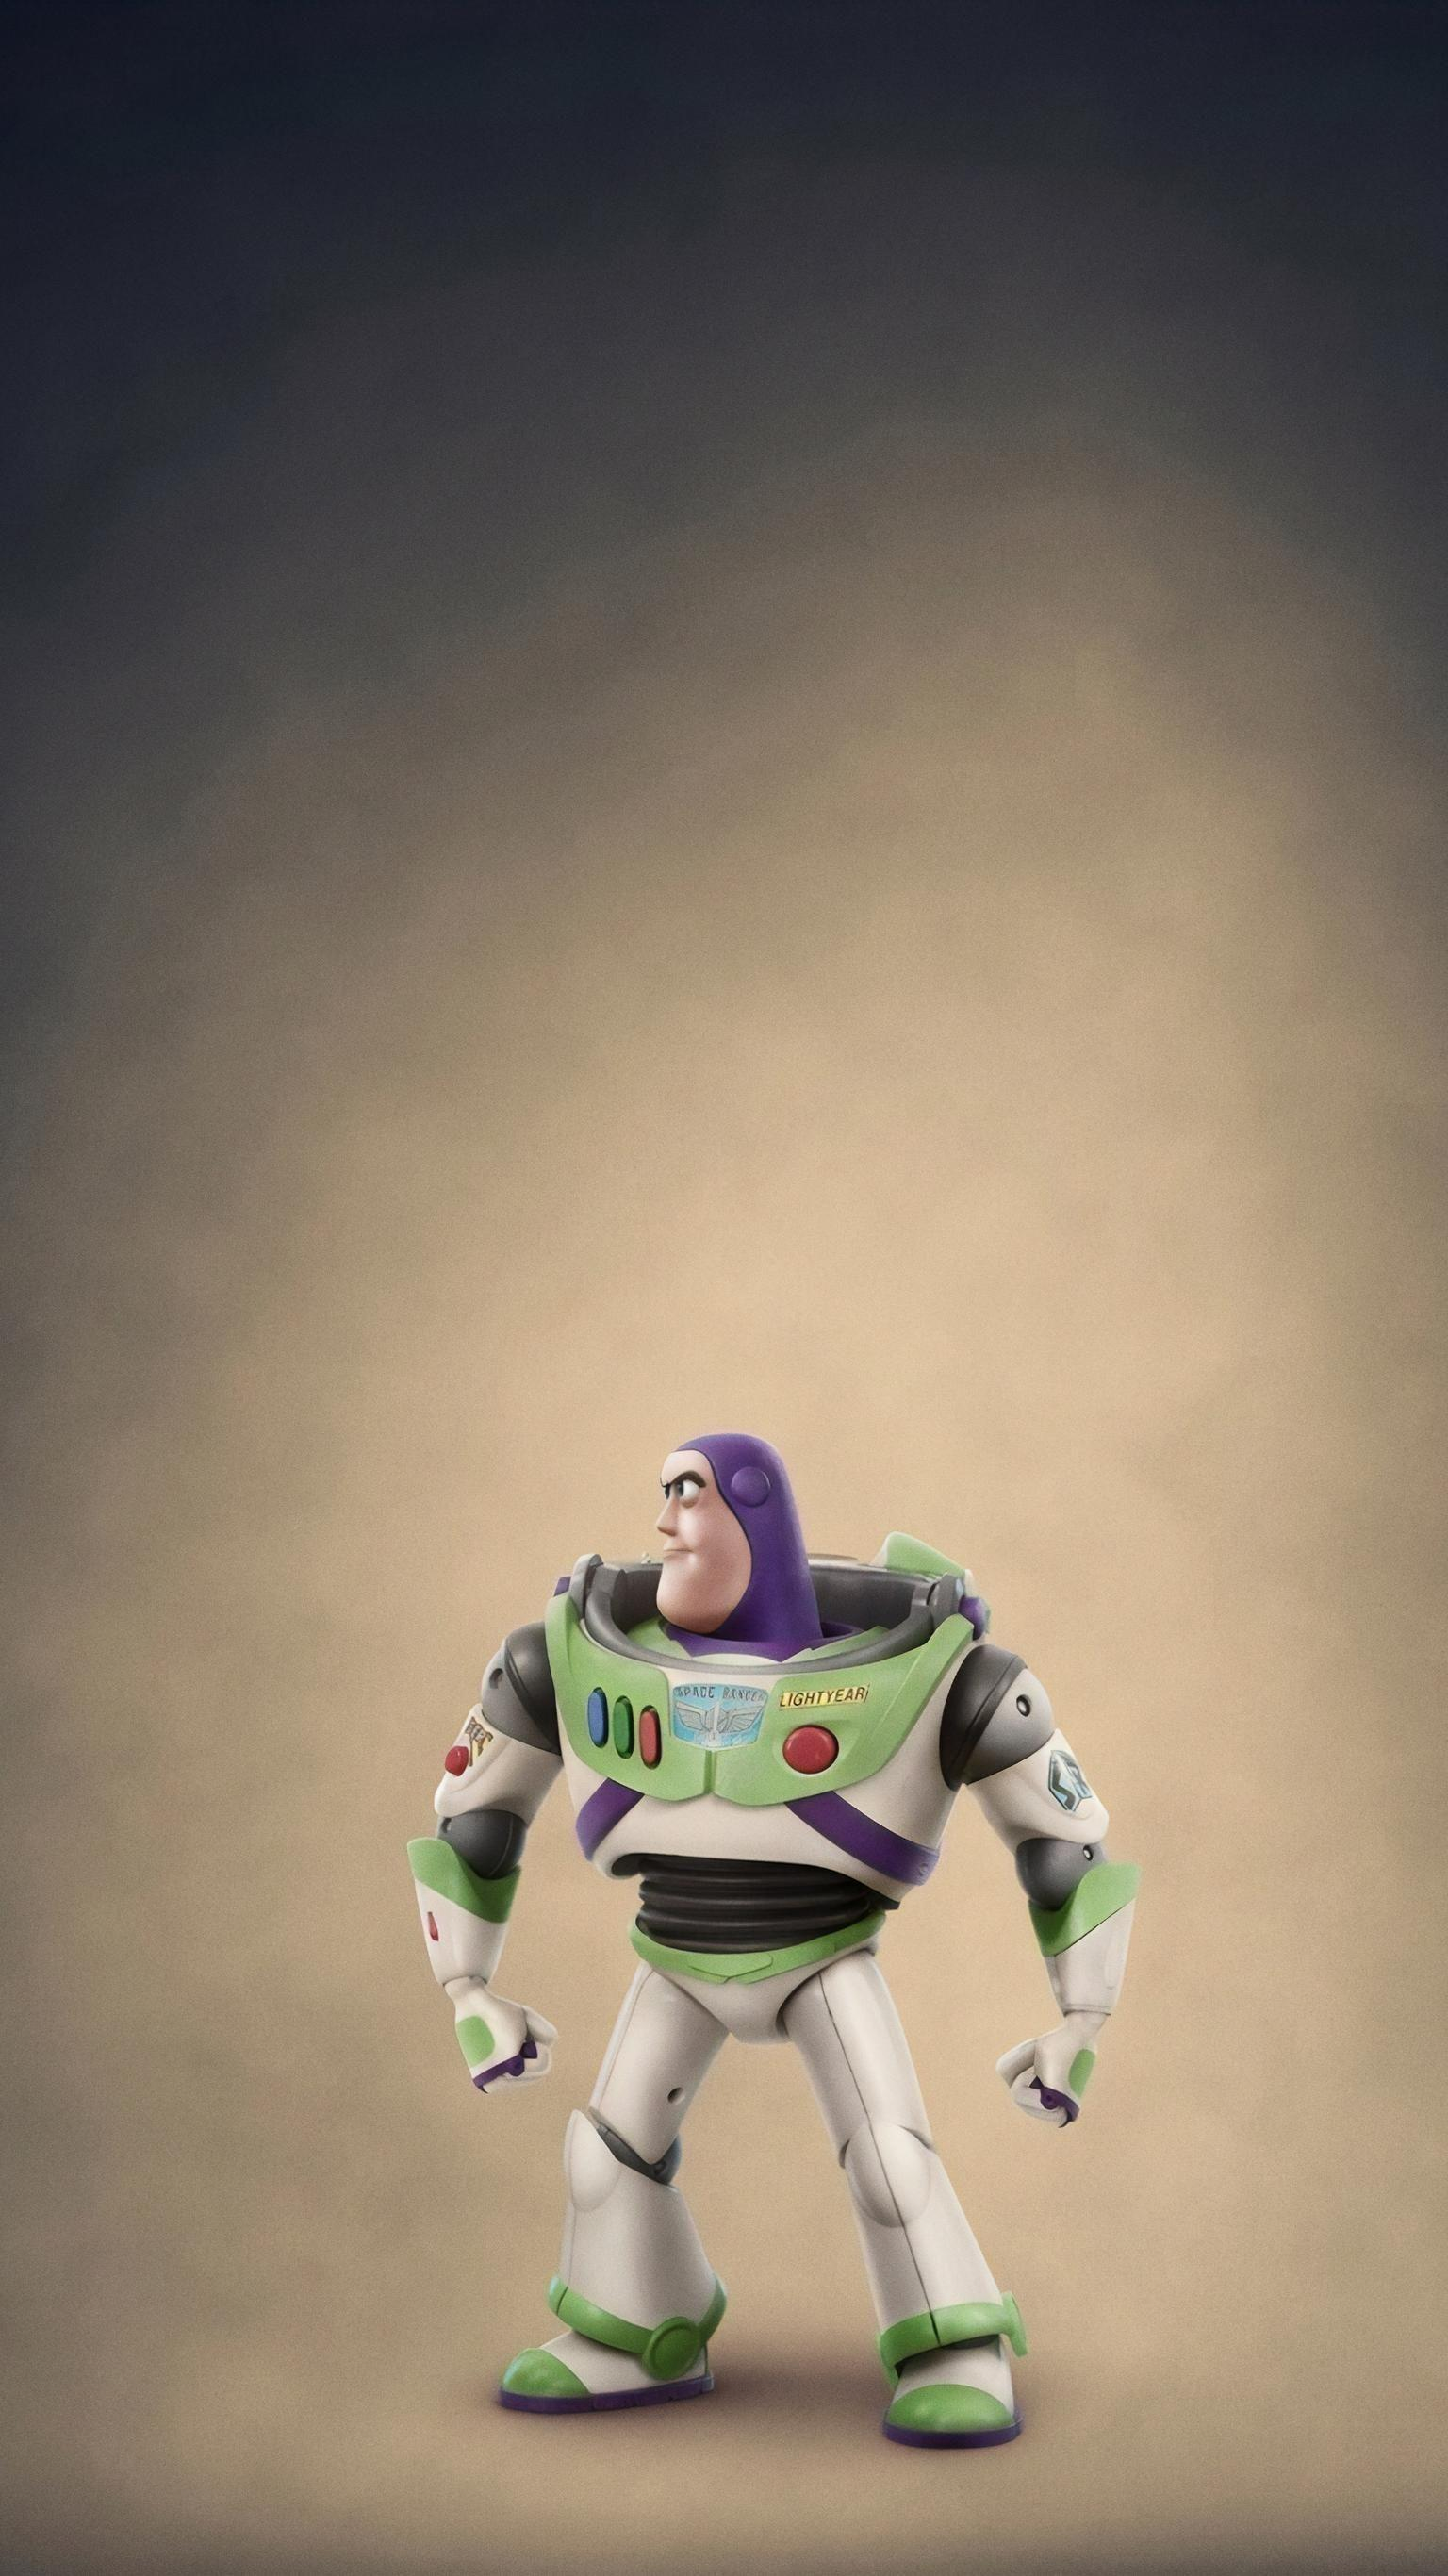 Toy Story 4 (2019) Phone Wallpaper in 2019 | I PAD | Movie posters ...